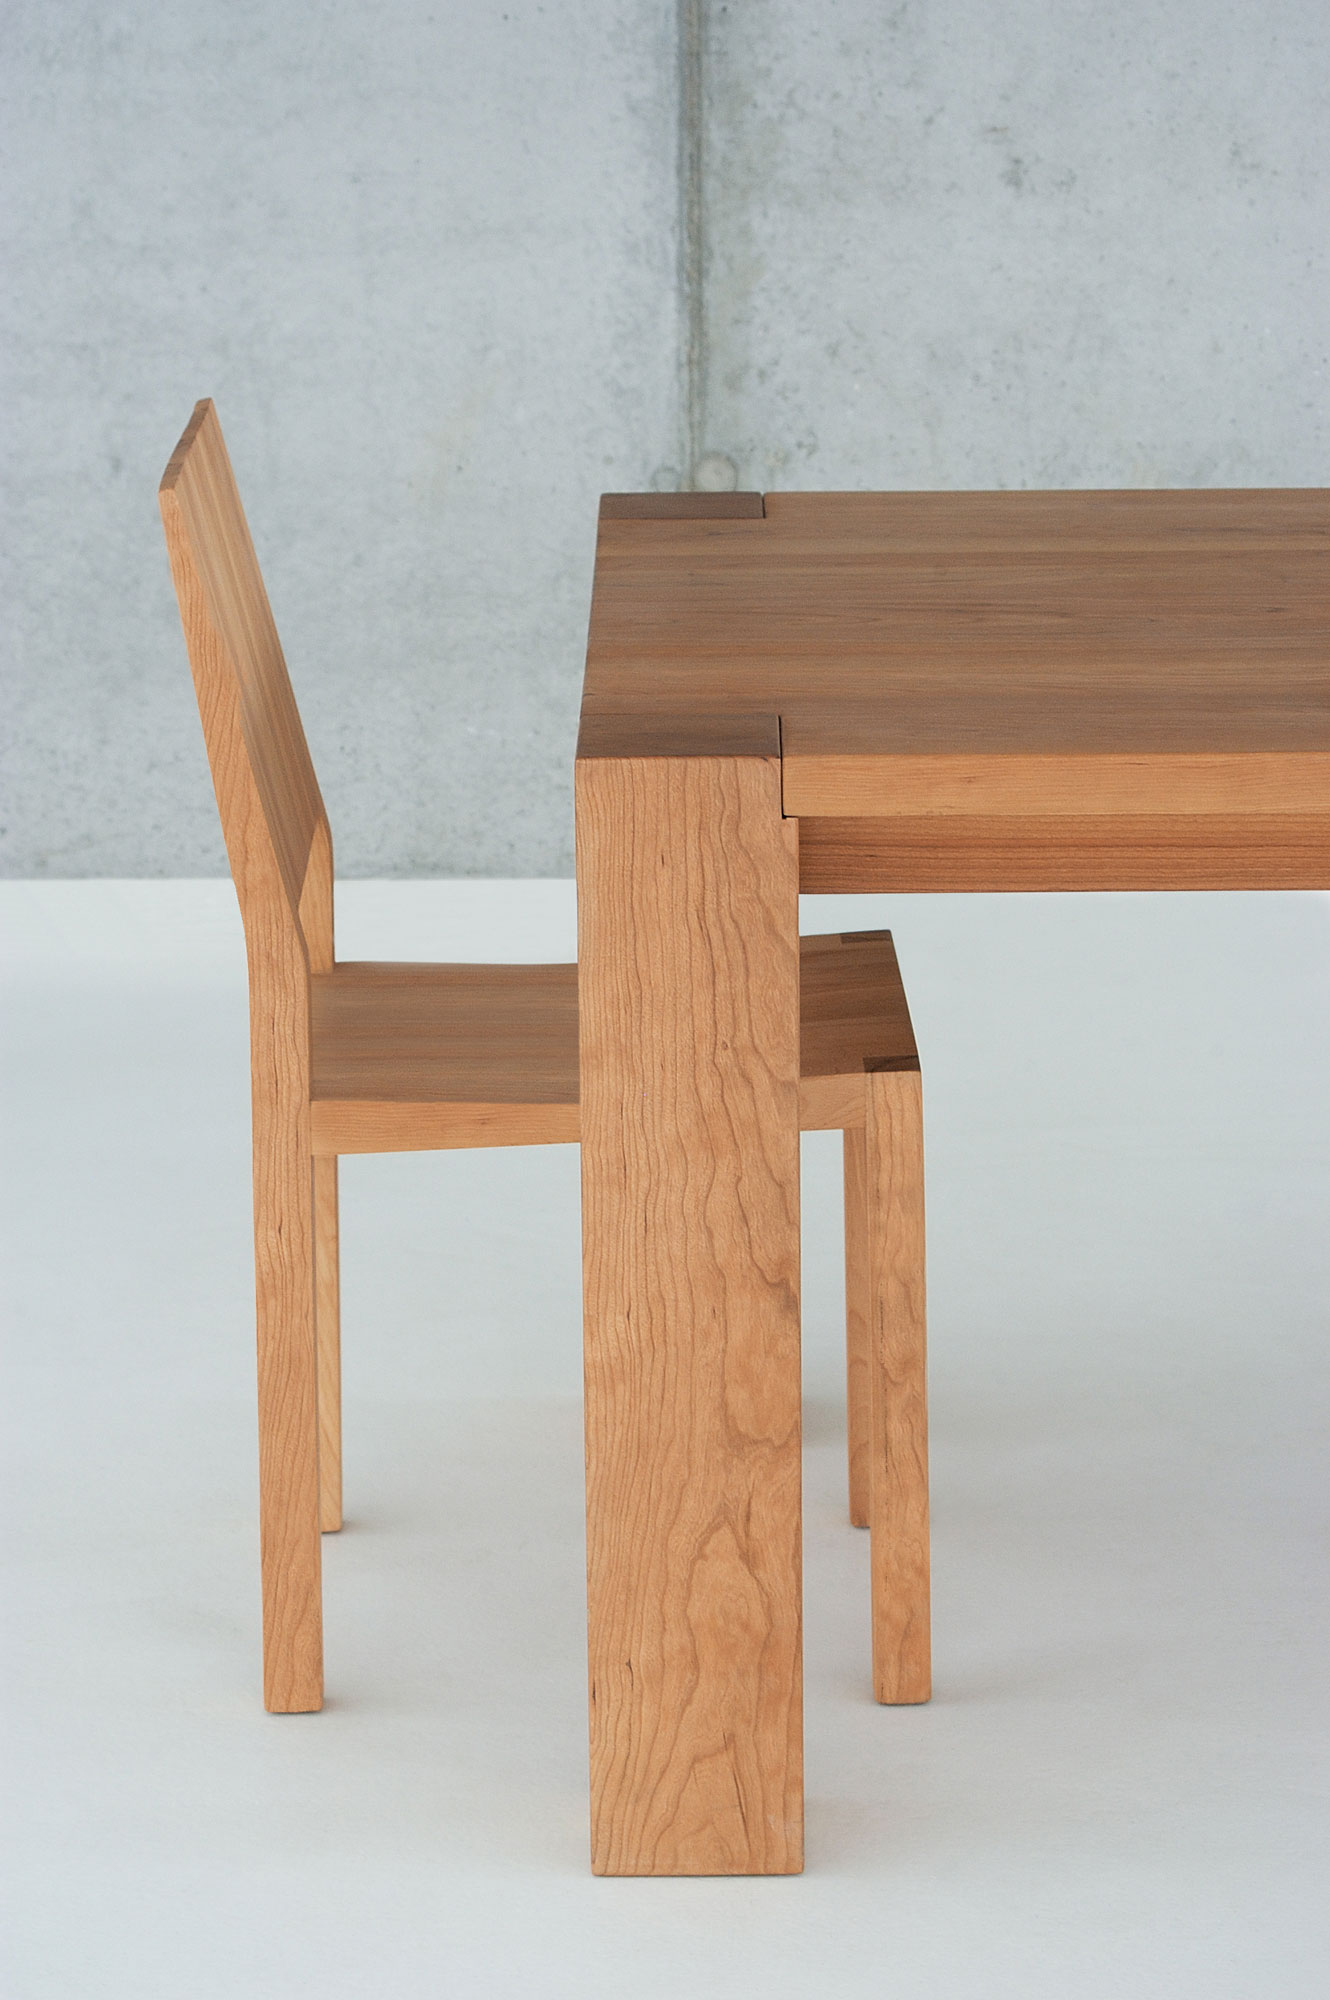 Rustic Solid Wood Table TAURUS 4 B14X14 0541 custom made in solid wood by vitamin design